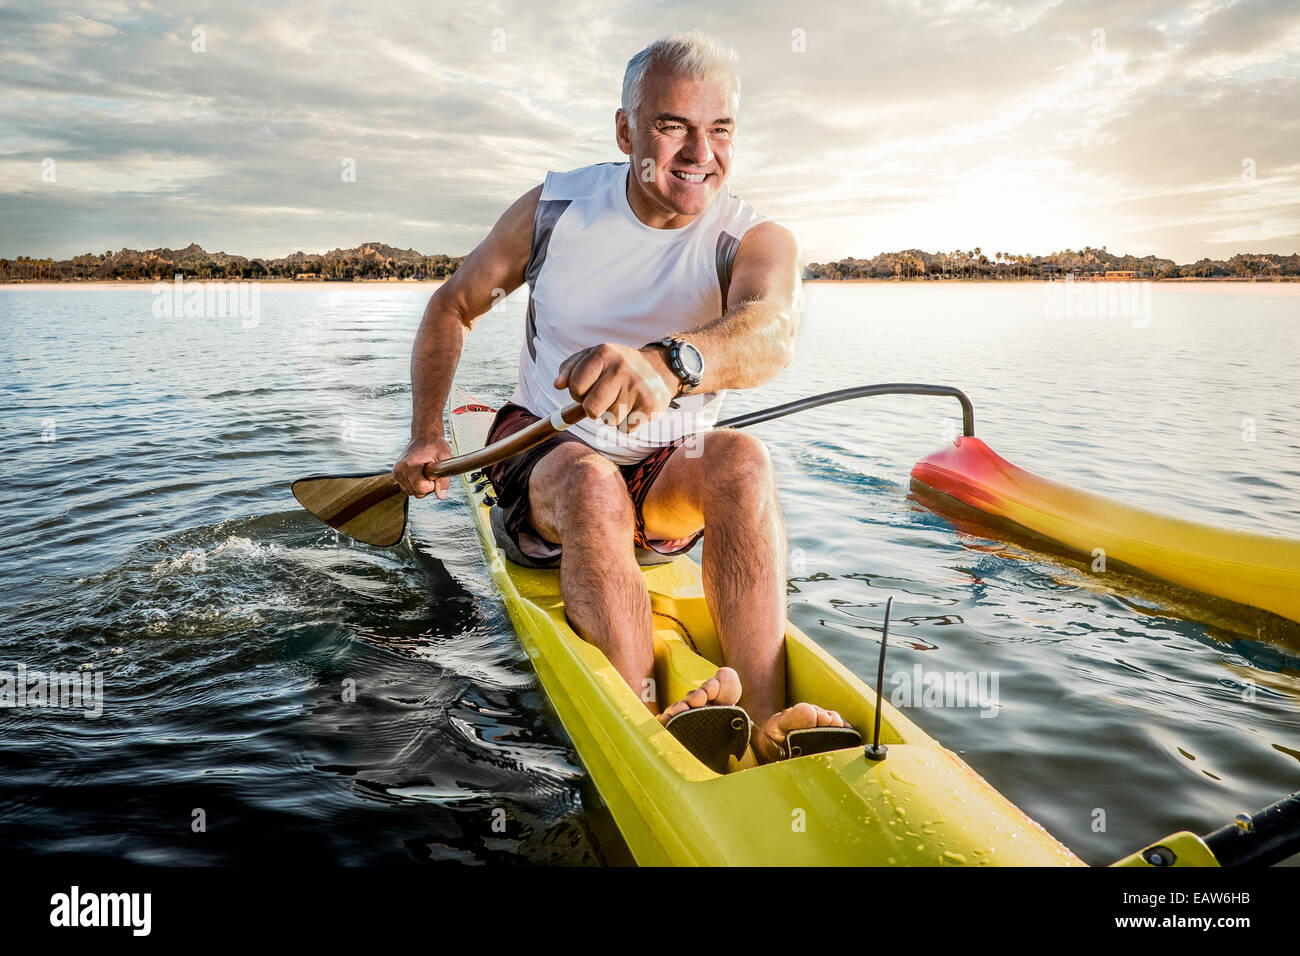 Senior man paddling outrigger canoe in the ocean at sunrise with tropical island behind him. - Stock Image